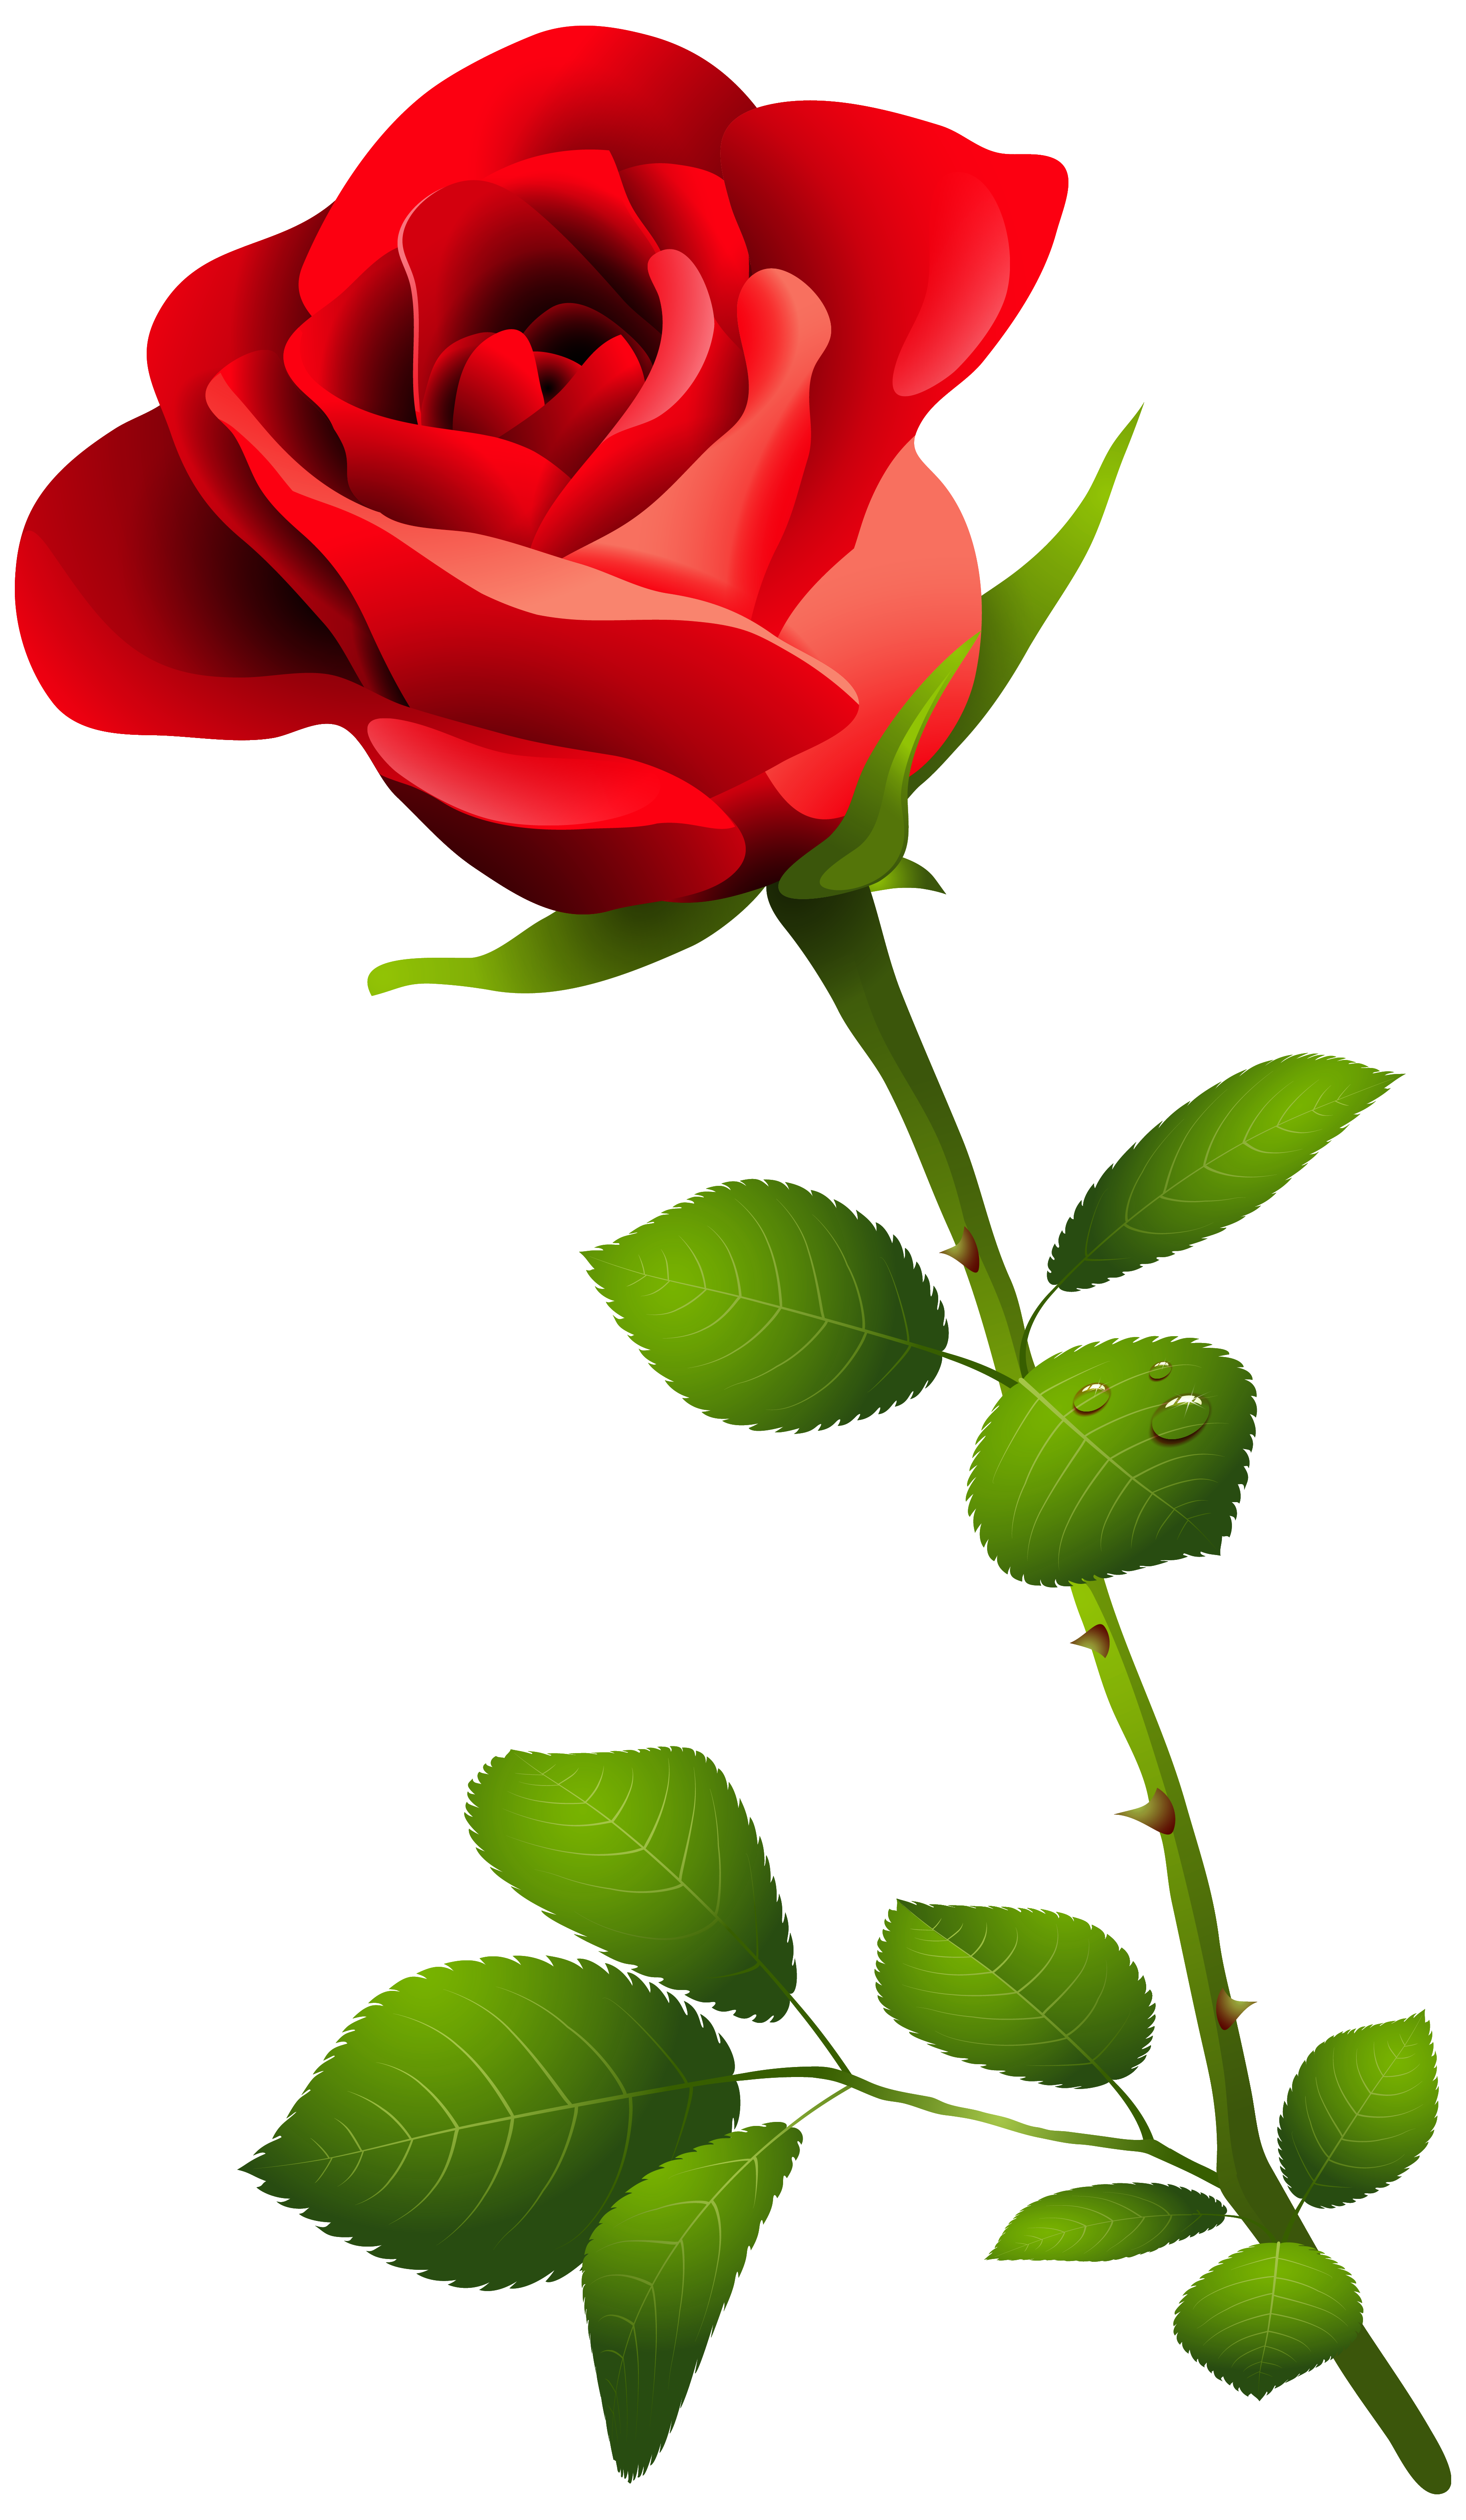 Clipart red rose